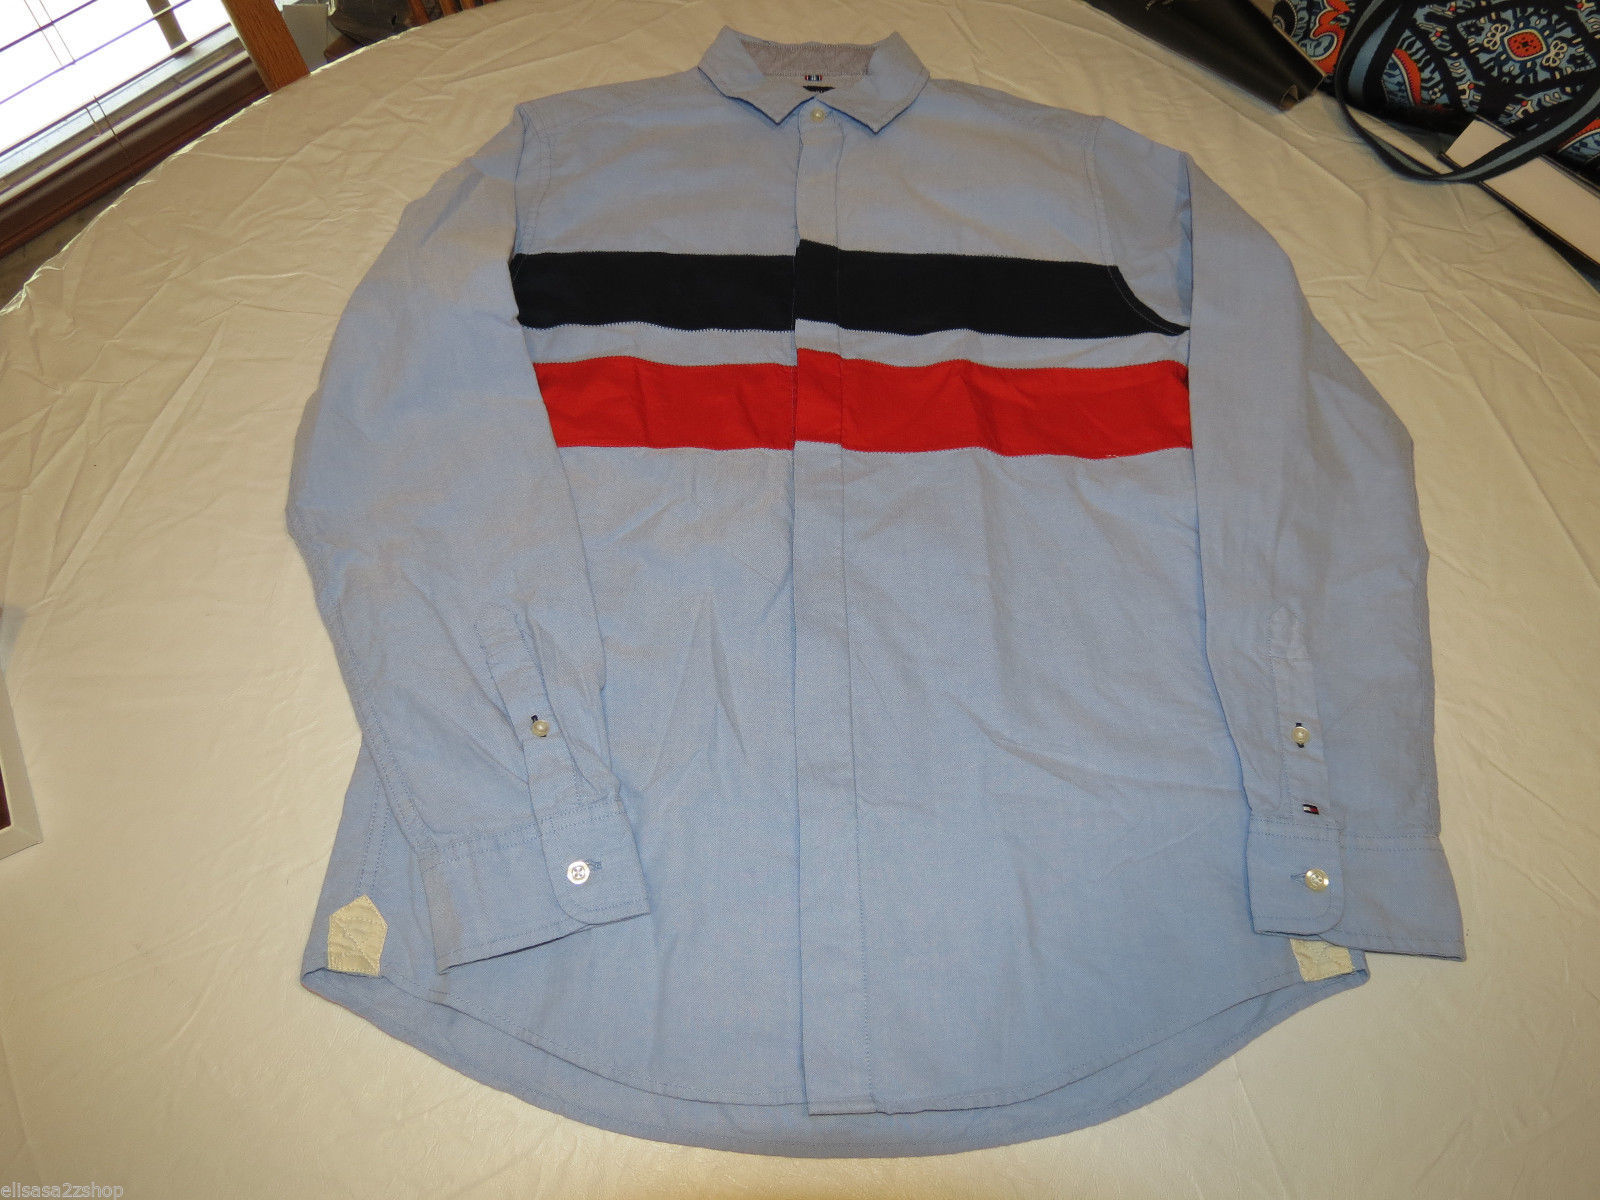 Primary image for Men's Tommy Hilfiger shirt L LG Custom Fit L/S button up 7871490 Cllctn Blue 472